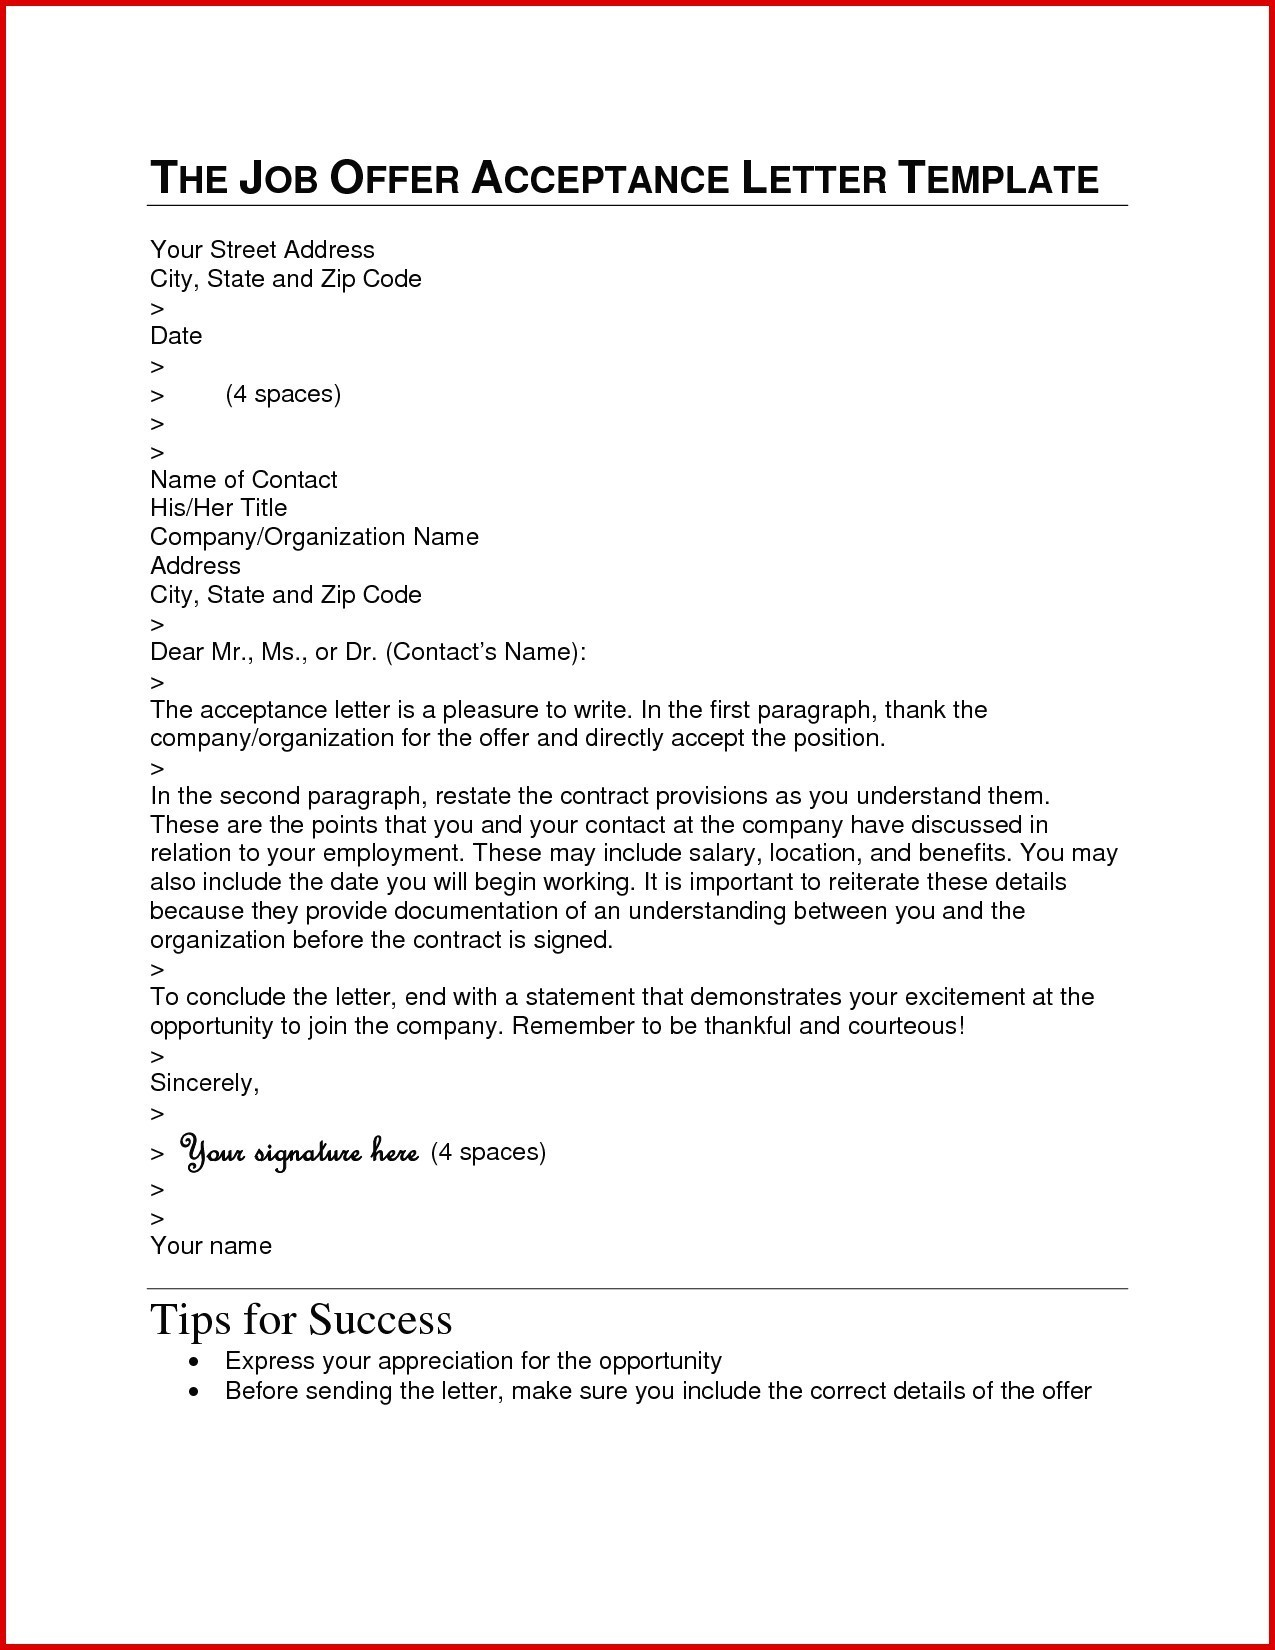 job offer letter template pdf cpt job fer letter sample fresh sample resignation letter template